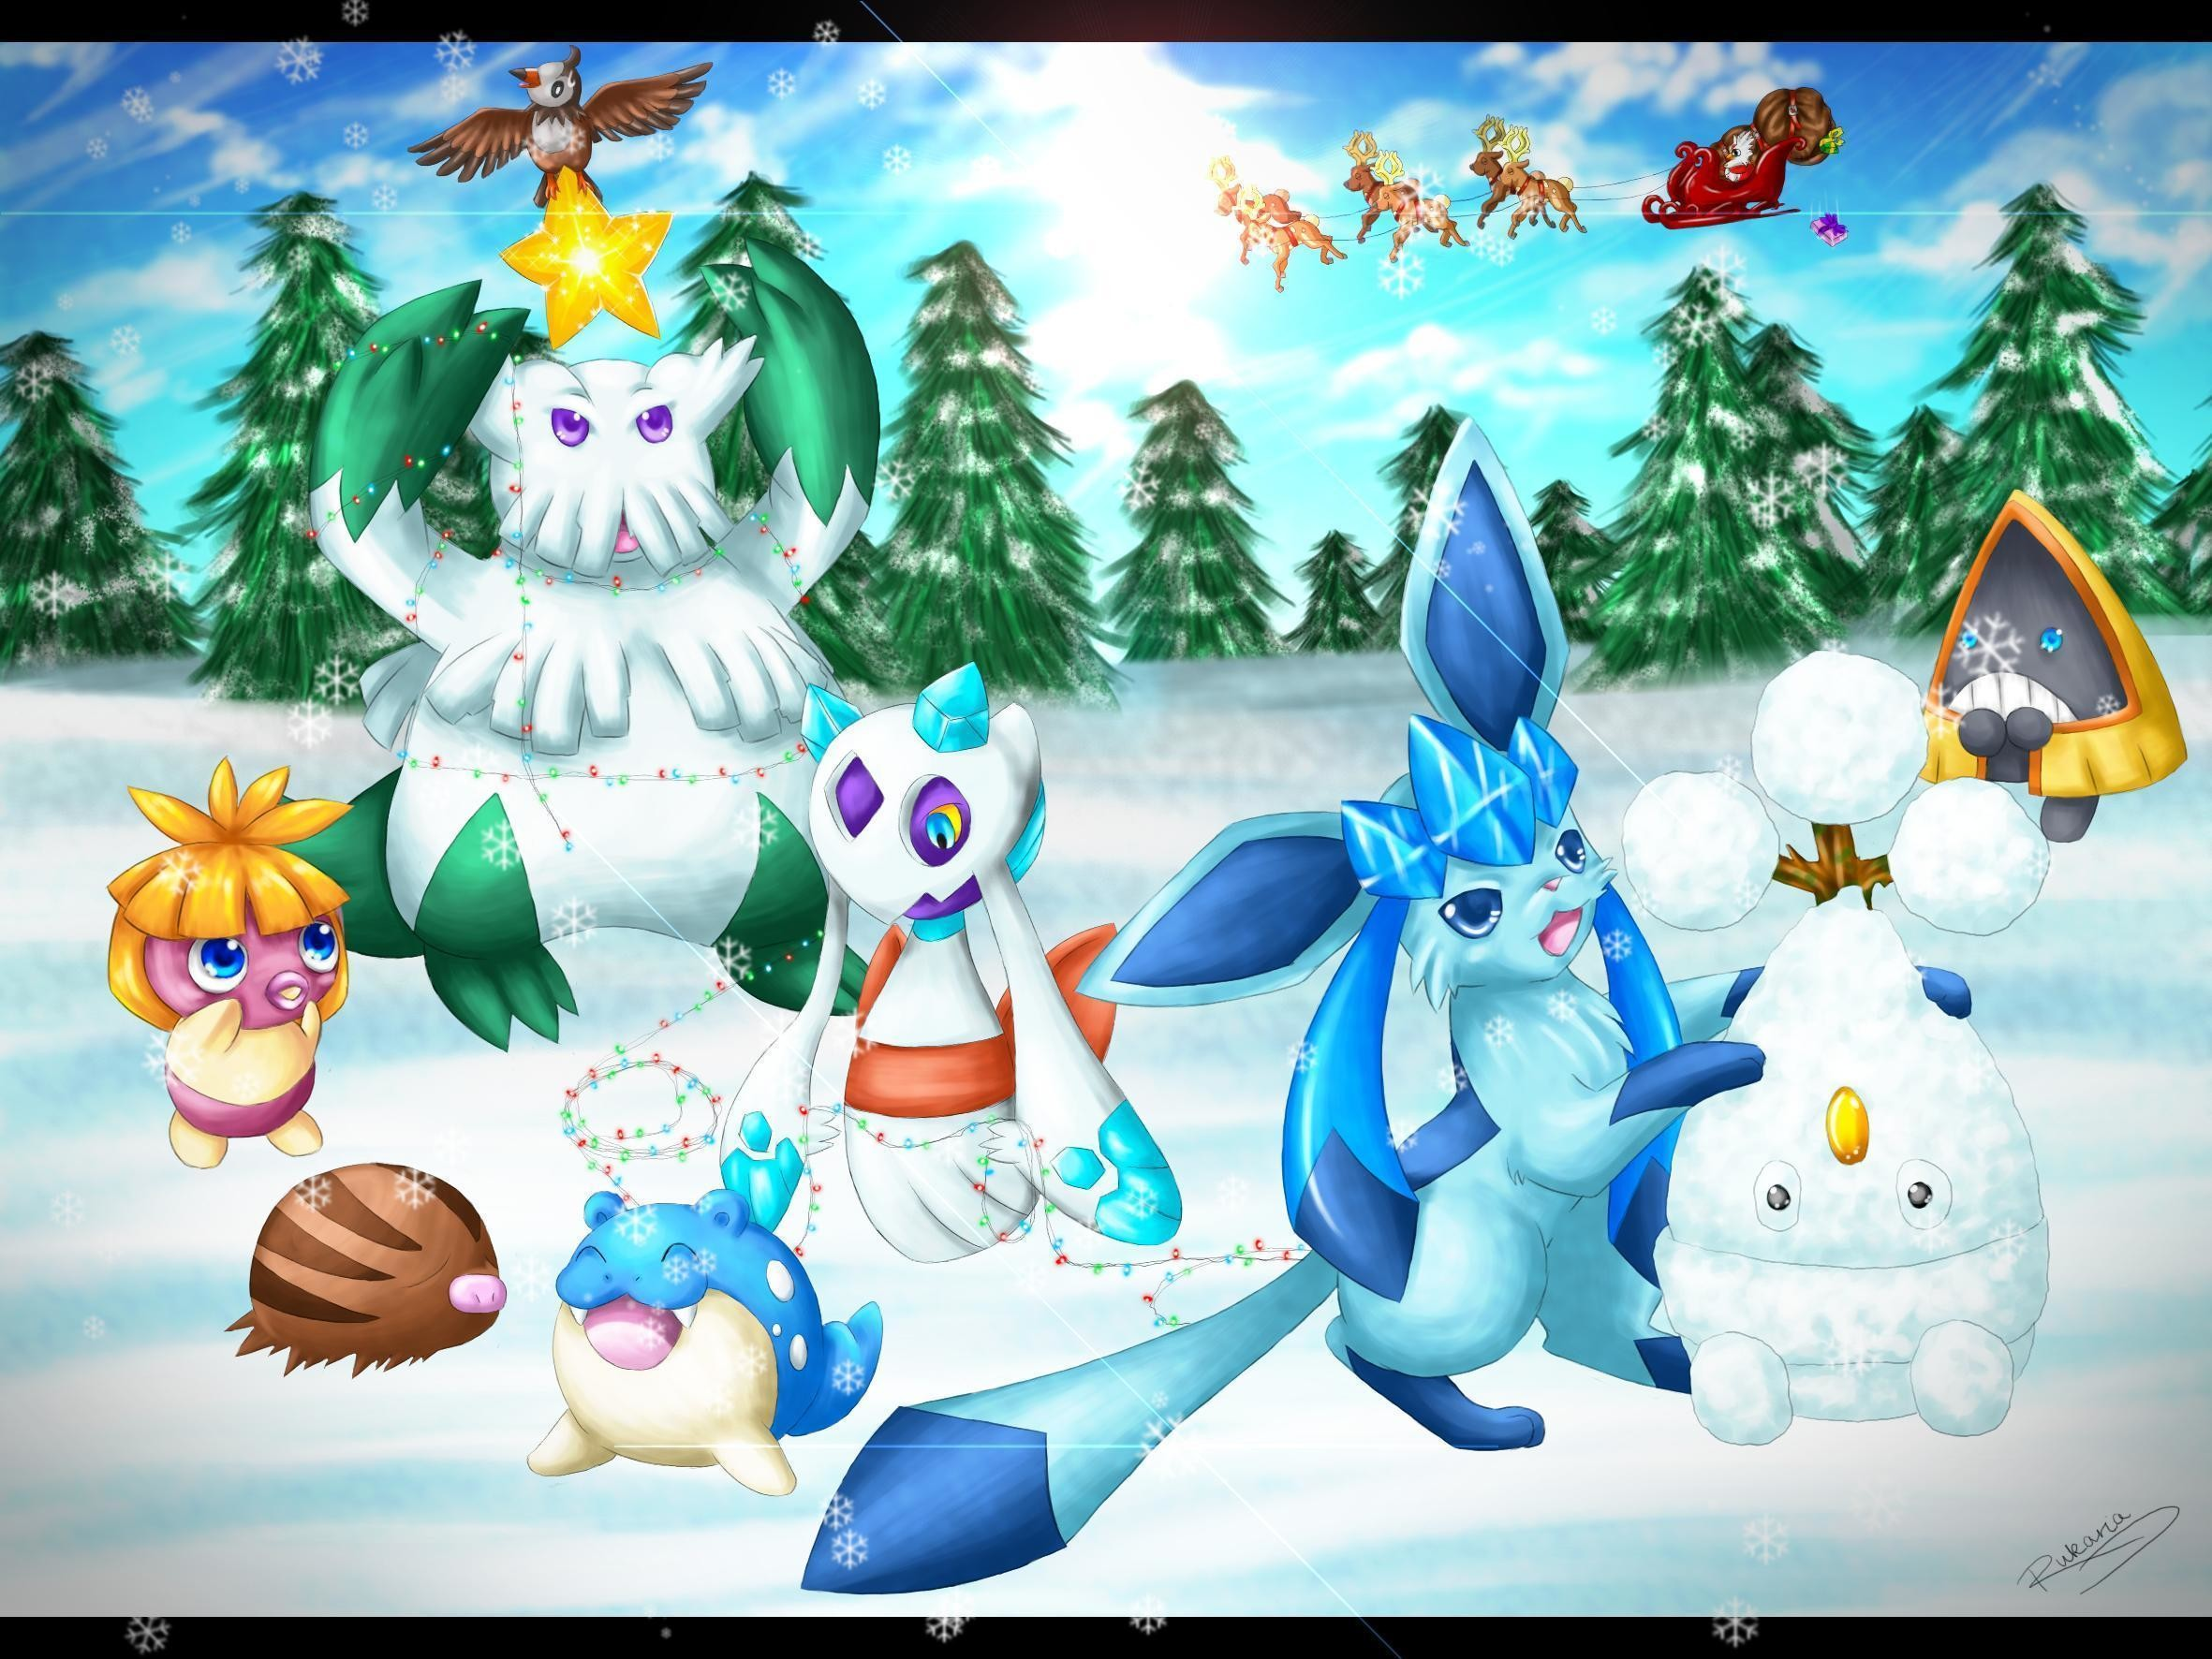 2362x1772 Filename: CUnpe3p.jpg · view image. Found on: pokemon-christmas-wallpaper